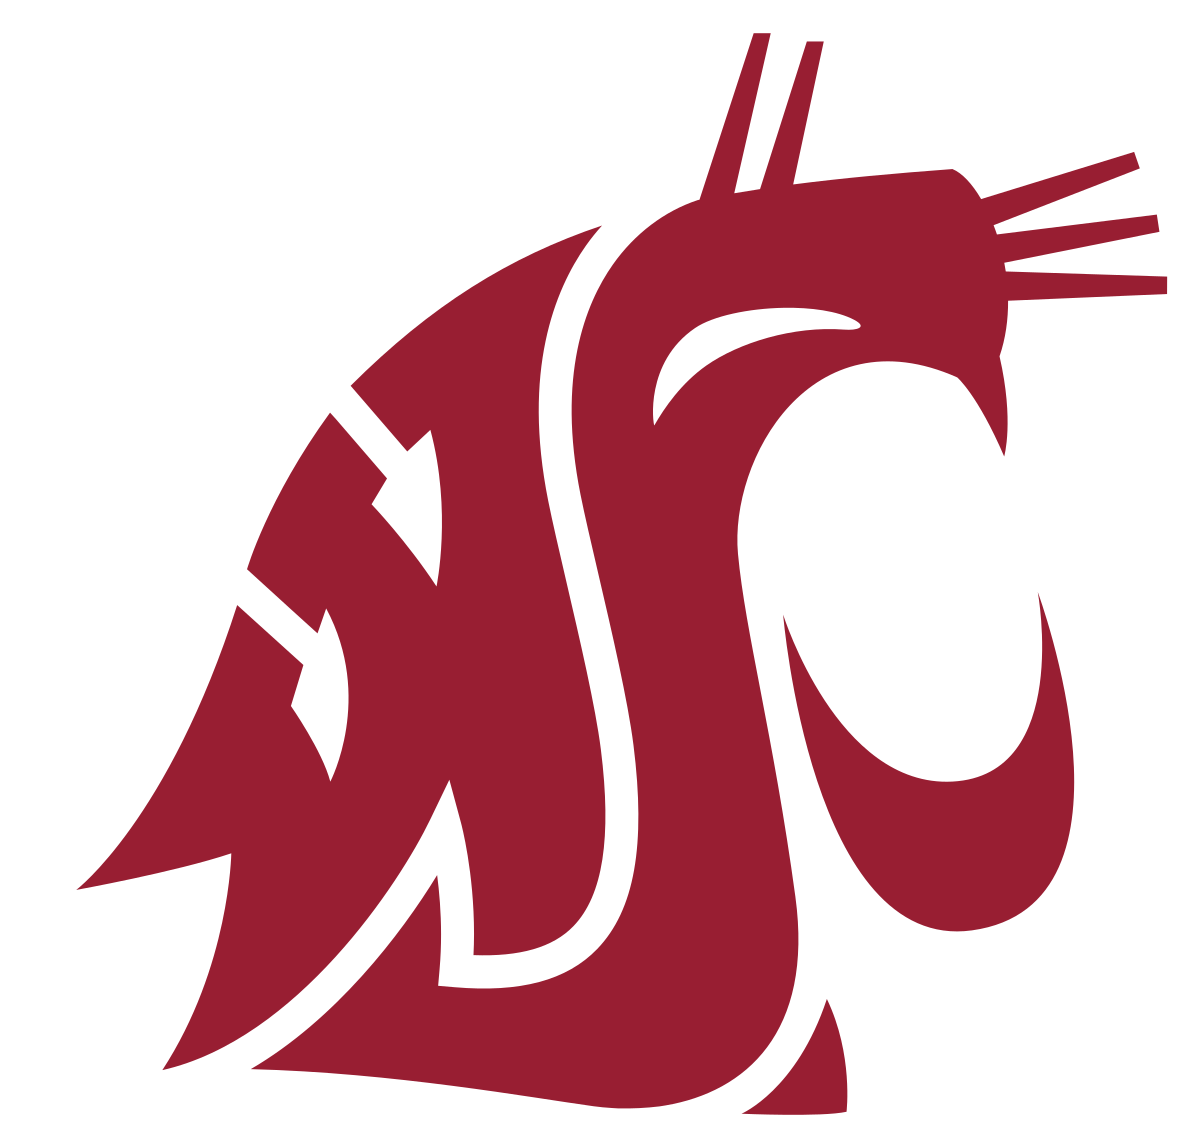 Washington State Cougars - Wikipedia